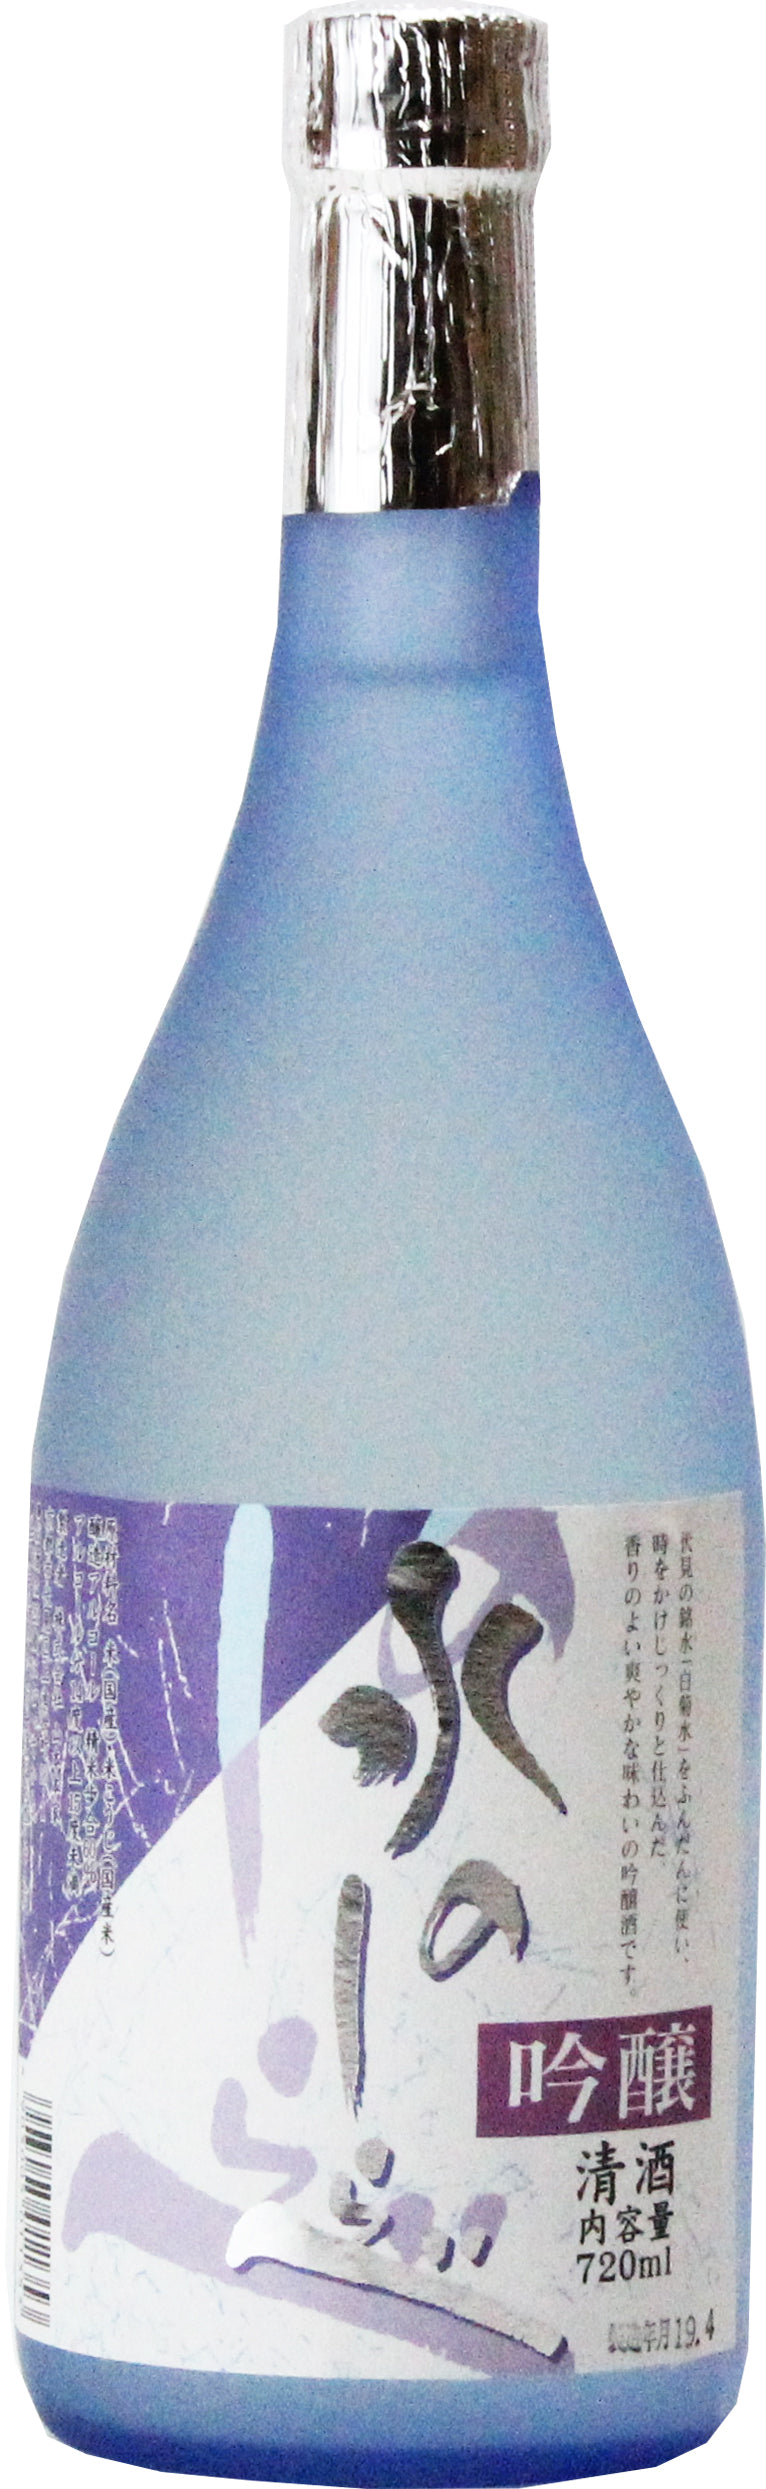 "Mizu No Shirabe ""Sound of Water"" - Sake Social - 1"